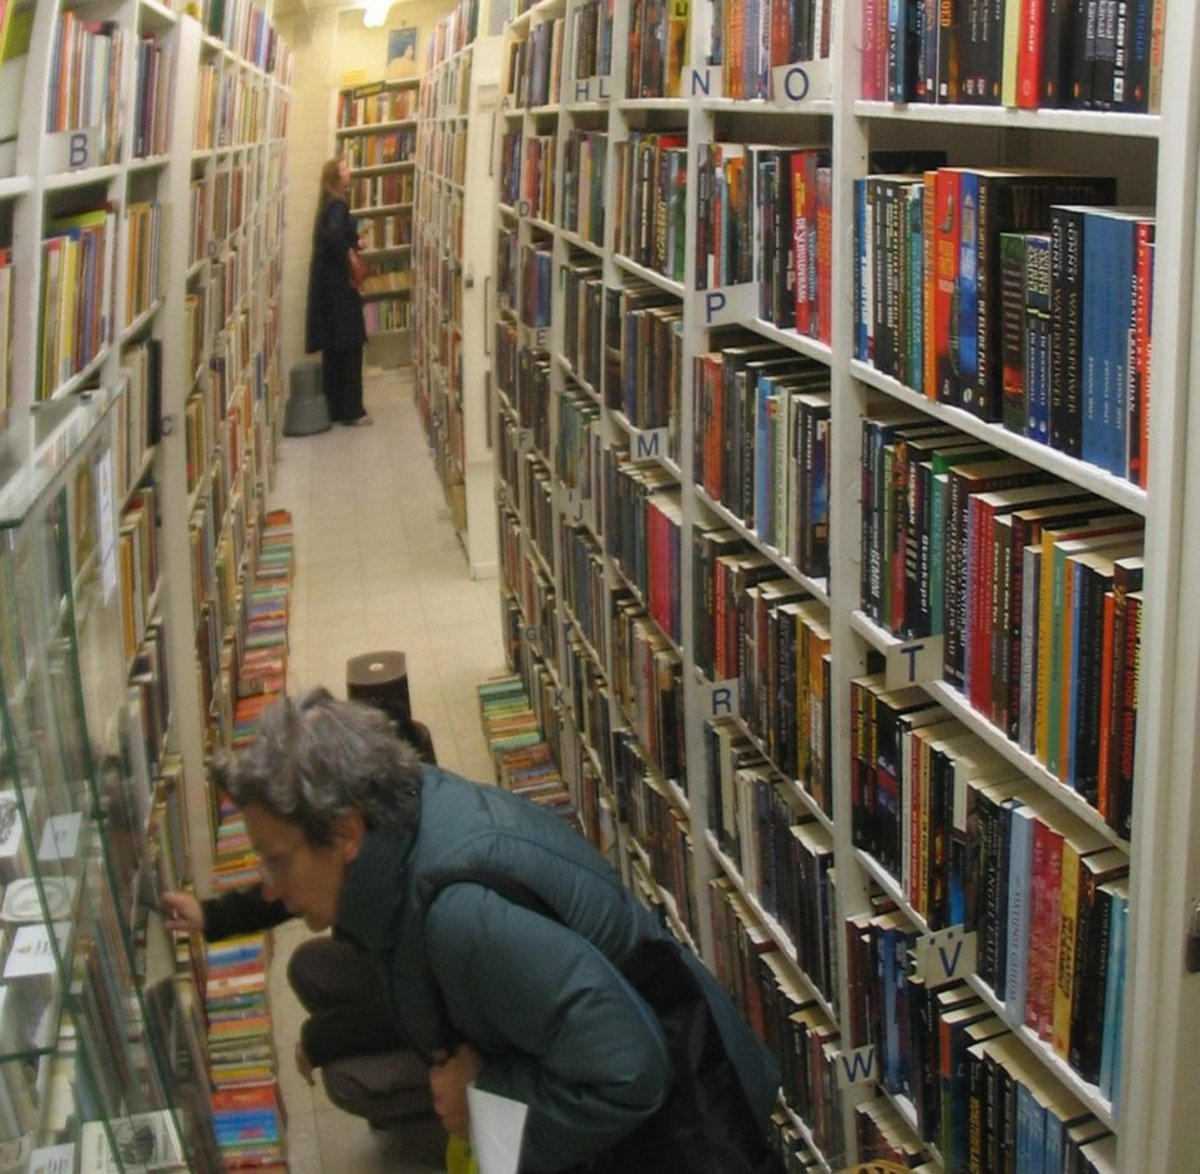 A library is a great place to catch up on books and art publications. Your journey through the zillion books and shelves of a library will be absolutely magical.